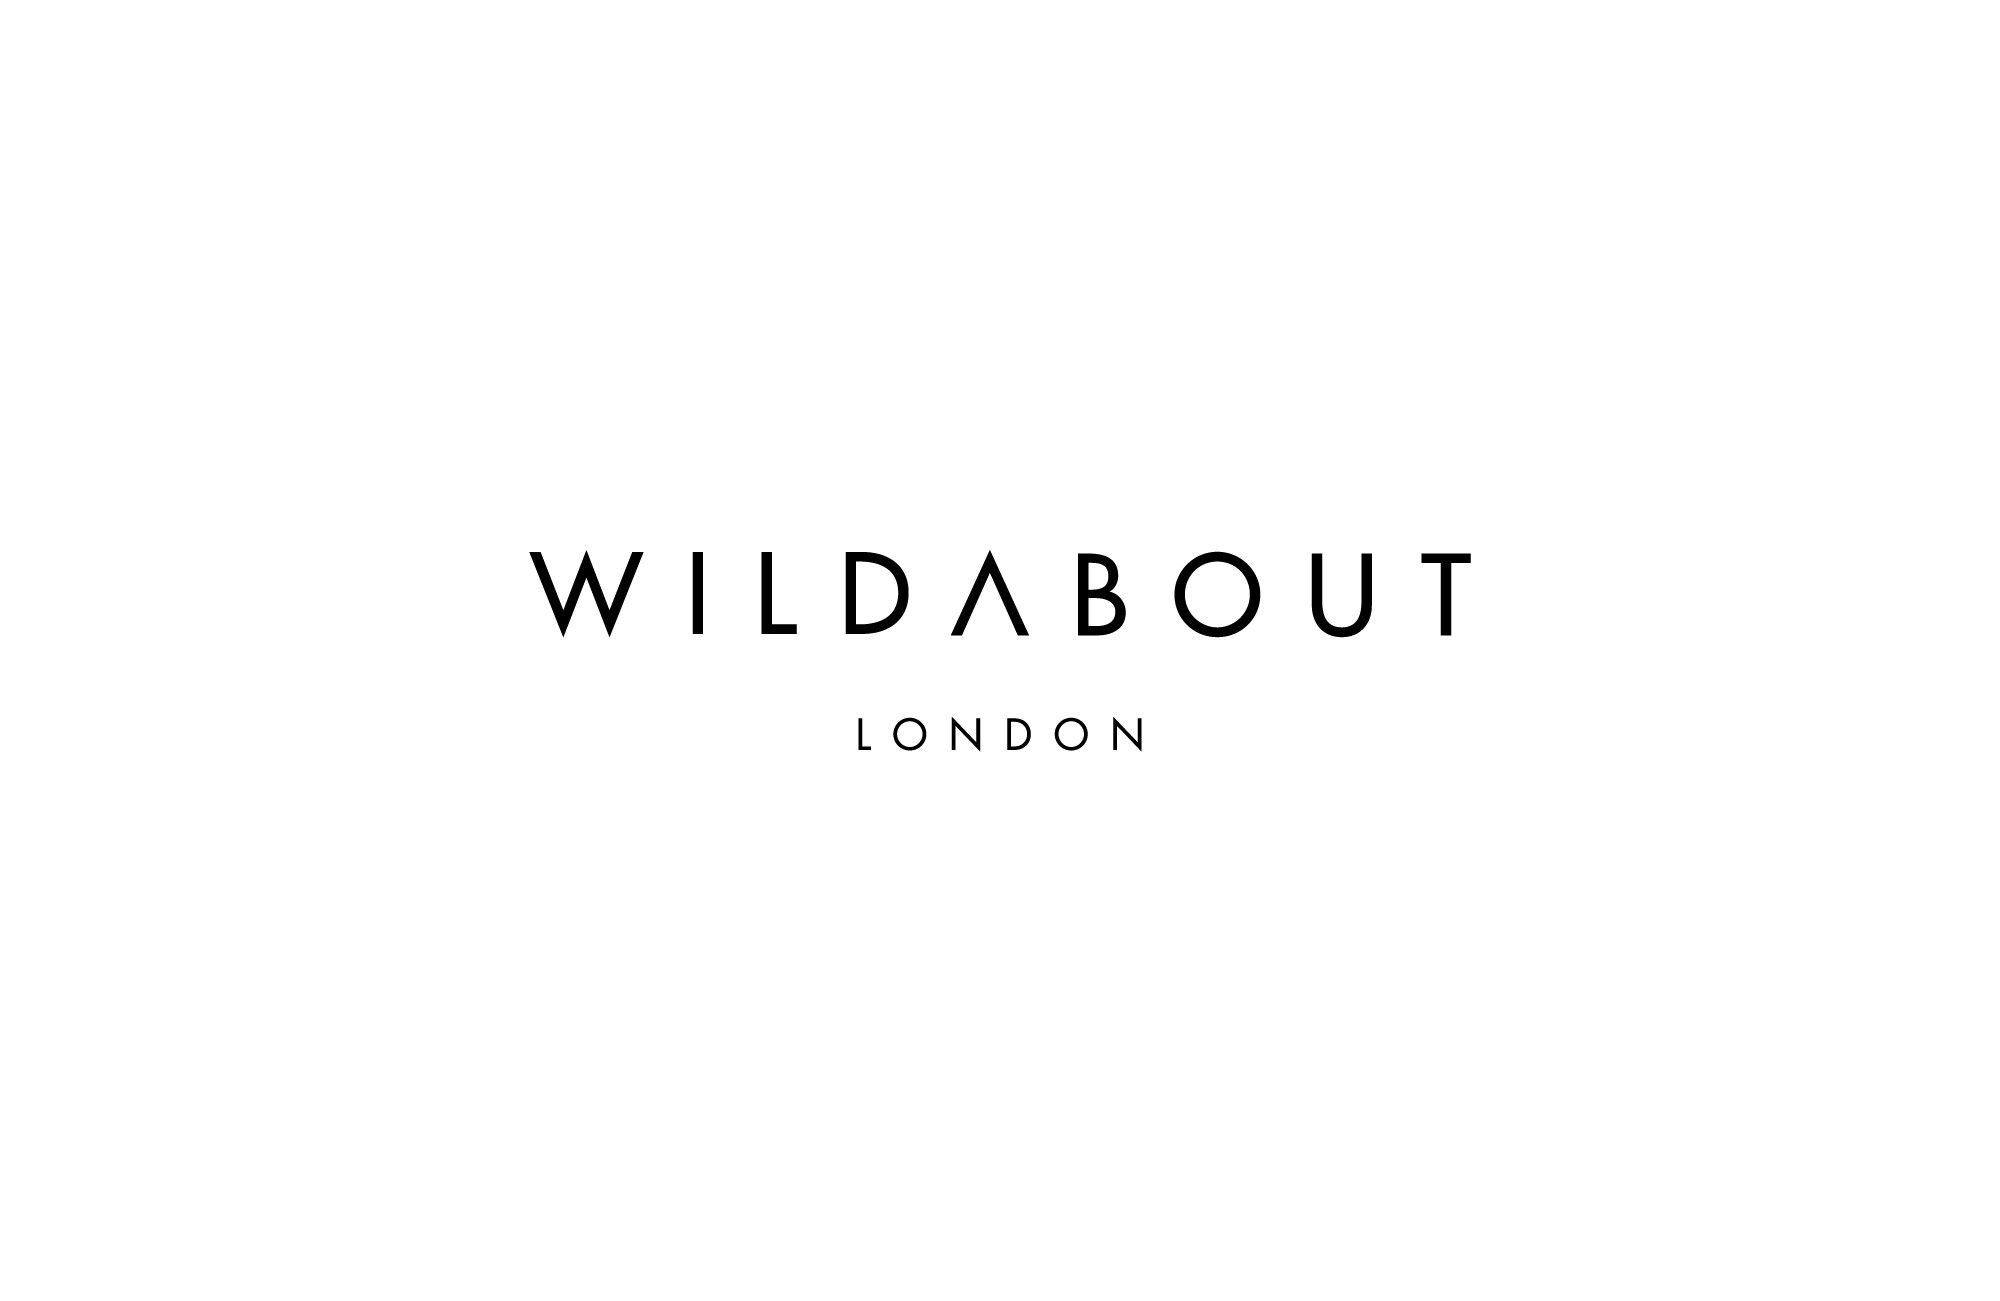 Bunch - Wildabout London